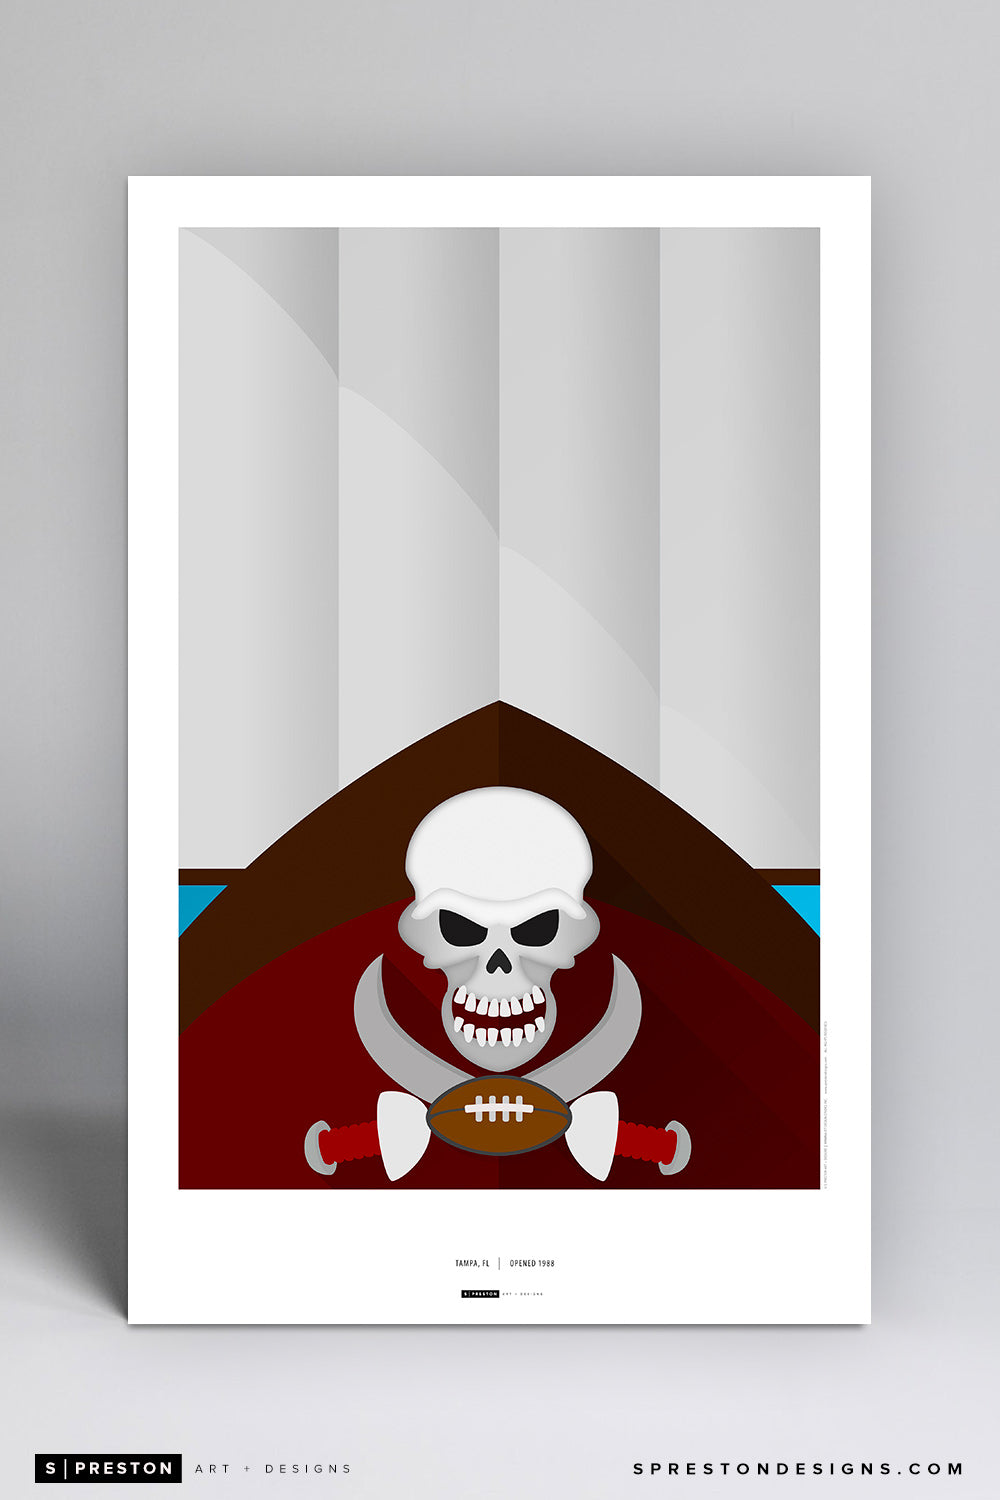 Minimalist Raymond James Stadium Art Poster Art Poster - Tampa Bay Buccaneers - S. Preston Art + Designs